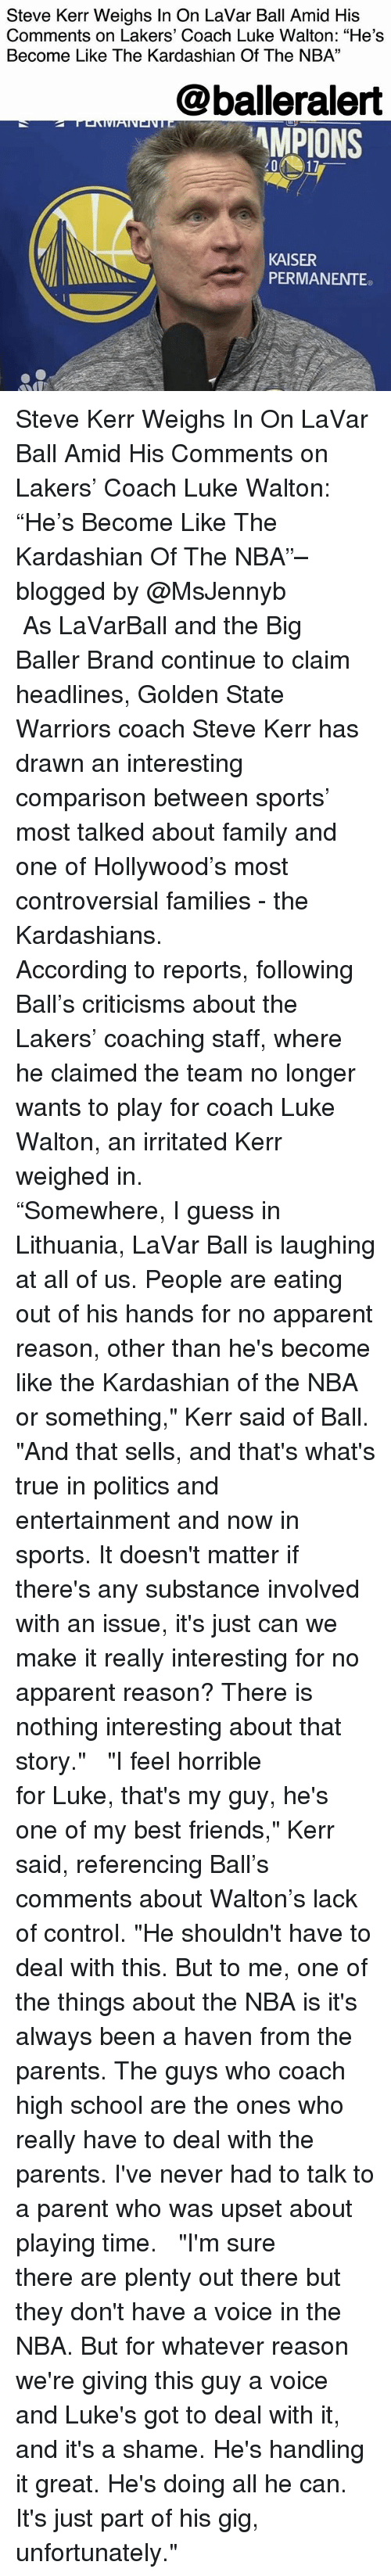 """Family, Friends, and Golden State Warriors: Steve Kerr Weighs In On LaVar Ball Amid His  Comments on Lakers' Coach Luke Walton: """"He's  Become Like The Kardashian Of The NBA""""  13  @balleralert  MPIONS  KAISER  PERMANENTE Steve Kerr Weighs In On LaVar Ball Amid His Comments on Lakers' Coach Luke Walton: """"He's Become Like The Kardashian Of The NBA""""– blogged by @MsJennyb ⠀⠀⠀⠀⠀⠀⠀ ⠀⠀⠀⠀⠀⠀⠀ As LaVarBall and the Big Baller Brand continue to claim headlines, Golden State Warriors coach Steve Kerr has drawn an interesting comparison between sports' most talked about family and one of Hollywood's most controversial families - the Kardashians. ⠀⠀⠀⠀⠀⠀⠀ ⠀⠀⠀⠀⠀⠀⠀ According to reports, following Ball's criticisms about the Lakers' coaching staff, where he claimed the team no longer wants to play for coach Luke Walton, an irritated Kerr weighed in. ⠀⠀⠀⠀⠀⠀⠀ ⠀⠀⠀⠀⠀⠀⠀ """"Somewhere, I guess in Lithuania, LaVar Ball is laughing at all of us. People are eating out of his hands for no apparent reason, other than he's become like the Kardashian of the NBA or something,"""" Kerr said of Ball. """"And that sells, and that's what's true in politics and entertainment and now in sports. It doesn't matter if there's any substance involved with an issue, it's just can we make it really interesting for no apparent reason? There is nothing interesting about that story."""" ⠀⠀⠀⠀⠀⠀⠀ ⠀⠀⠀⠀⠀⠀⠀ """"I feel horrible for Luke, that's my guy, he's one of my best friends,"""" Kerr said, referencing Ball's comments about Walton's lack of control. """"He shouldn't have to deal with this. But to me, one of the things about the NBA is it's always been a haven from the parents. The guys who coach high school are the ones who really have to deal with the parents. I've never had to talk to a parent who was upset about playing time. ⠀⠀⠀⠀⠀⠀⠀ ⠀⠀⠀⠀⠀⠀⠀ """"I'm sure there are plenty out there but they don't have a voice in the NBA. But for whatever reason we're giving this guy a voice and Luke's got to deal with it, and it's a shame. He's handling """